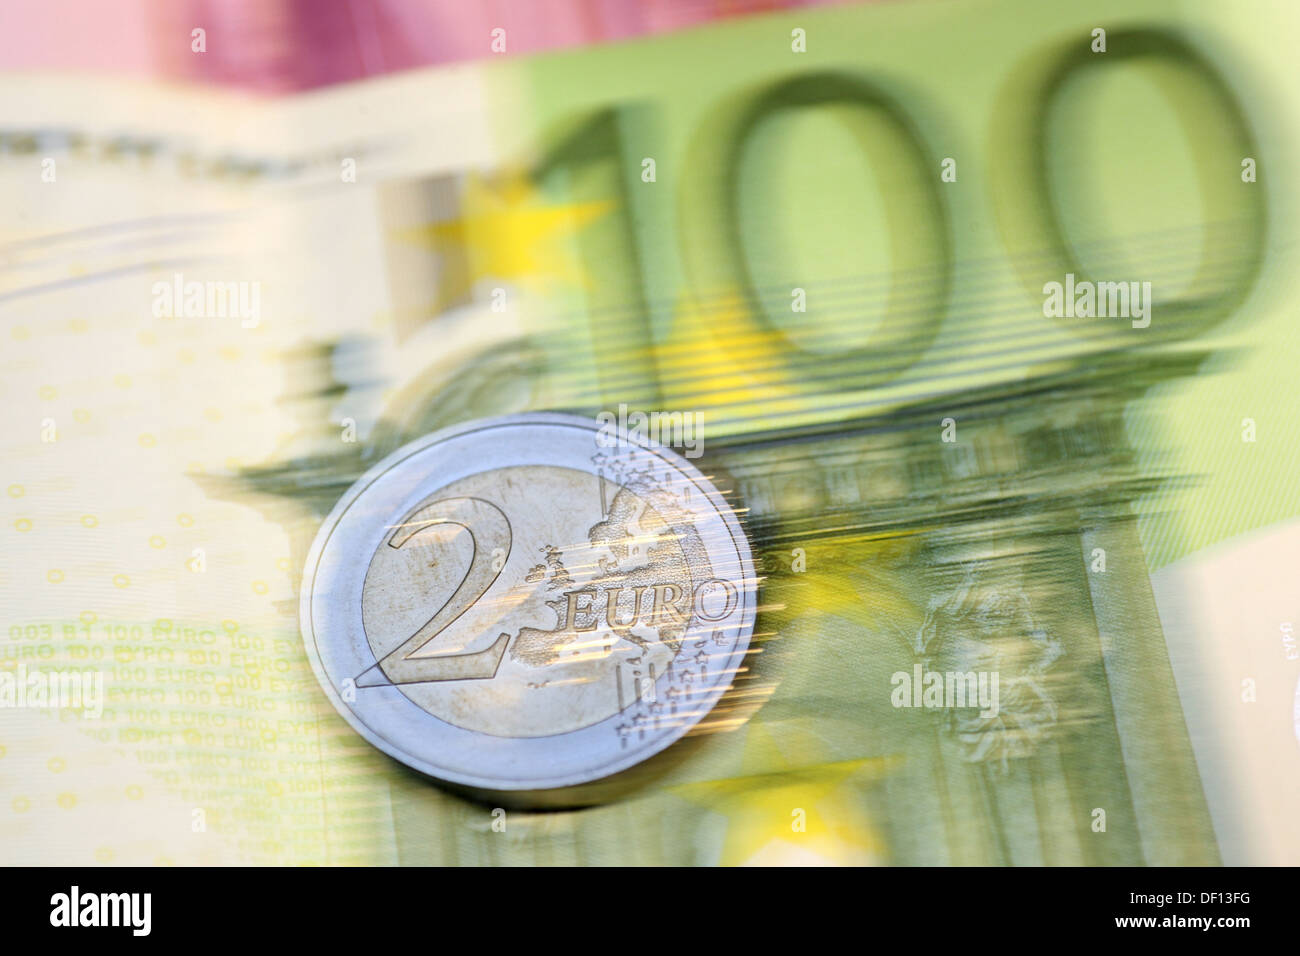 Berlin, Germany, the coin is on a banknote Stock Photo